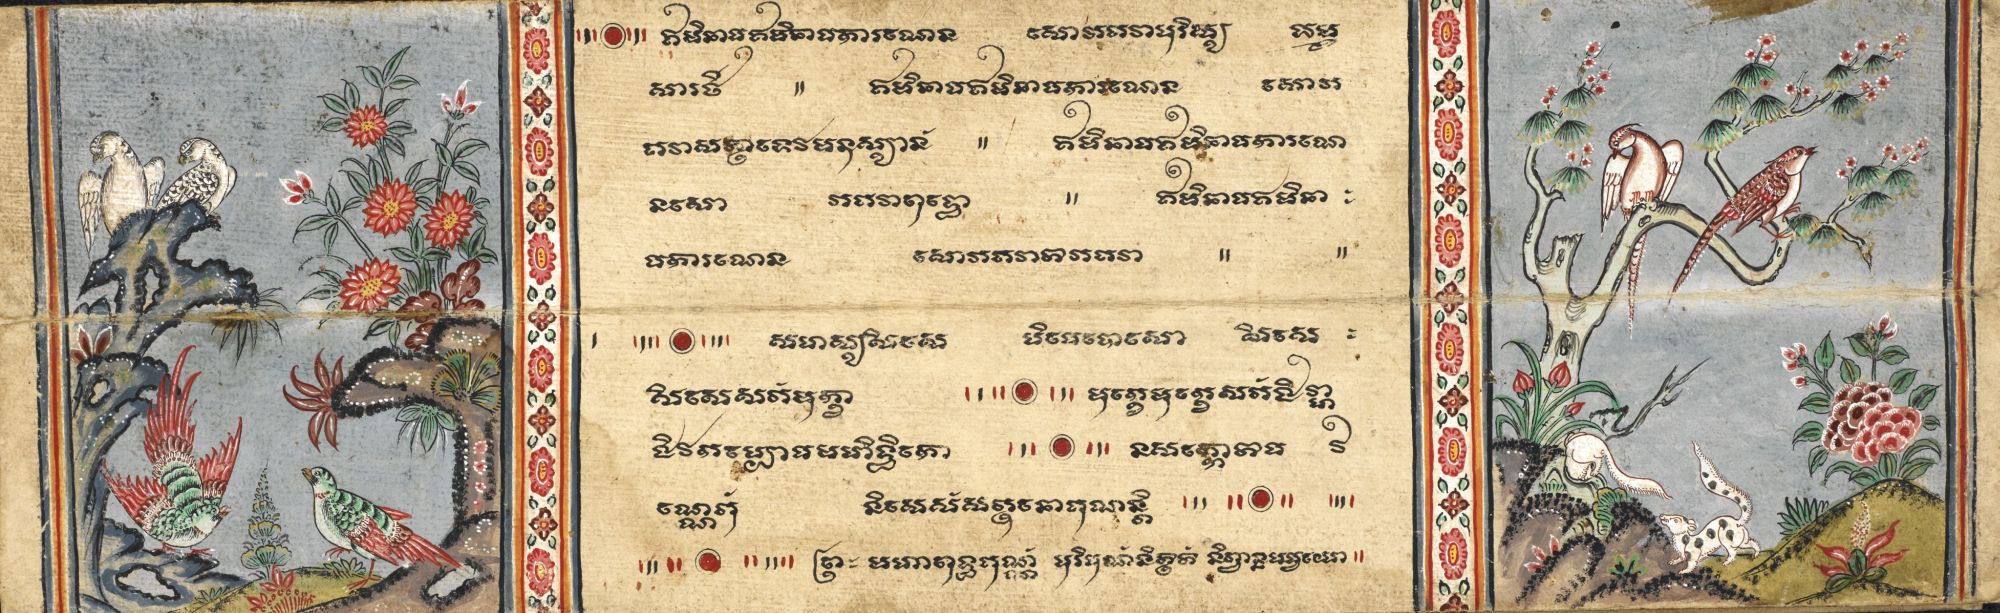 Illustrations of birds and other small forest animals accompanying a Buddhist text in Khom (Khmer) script.